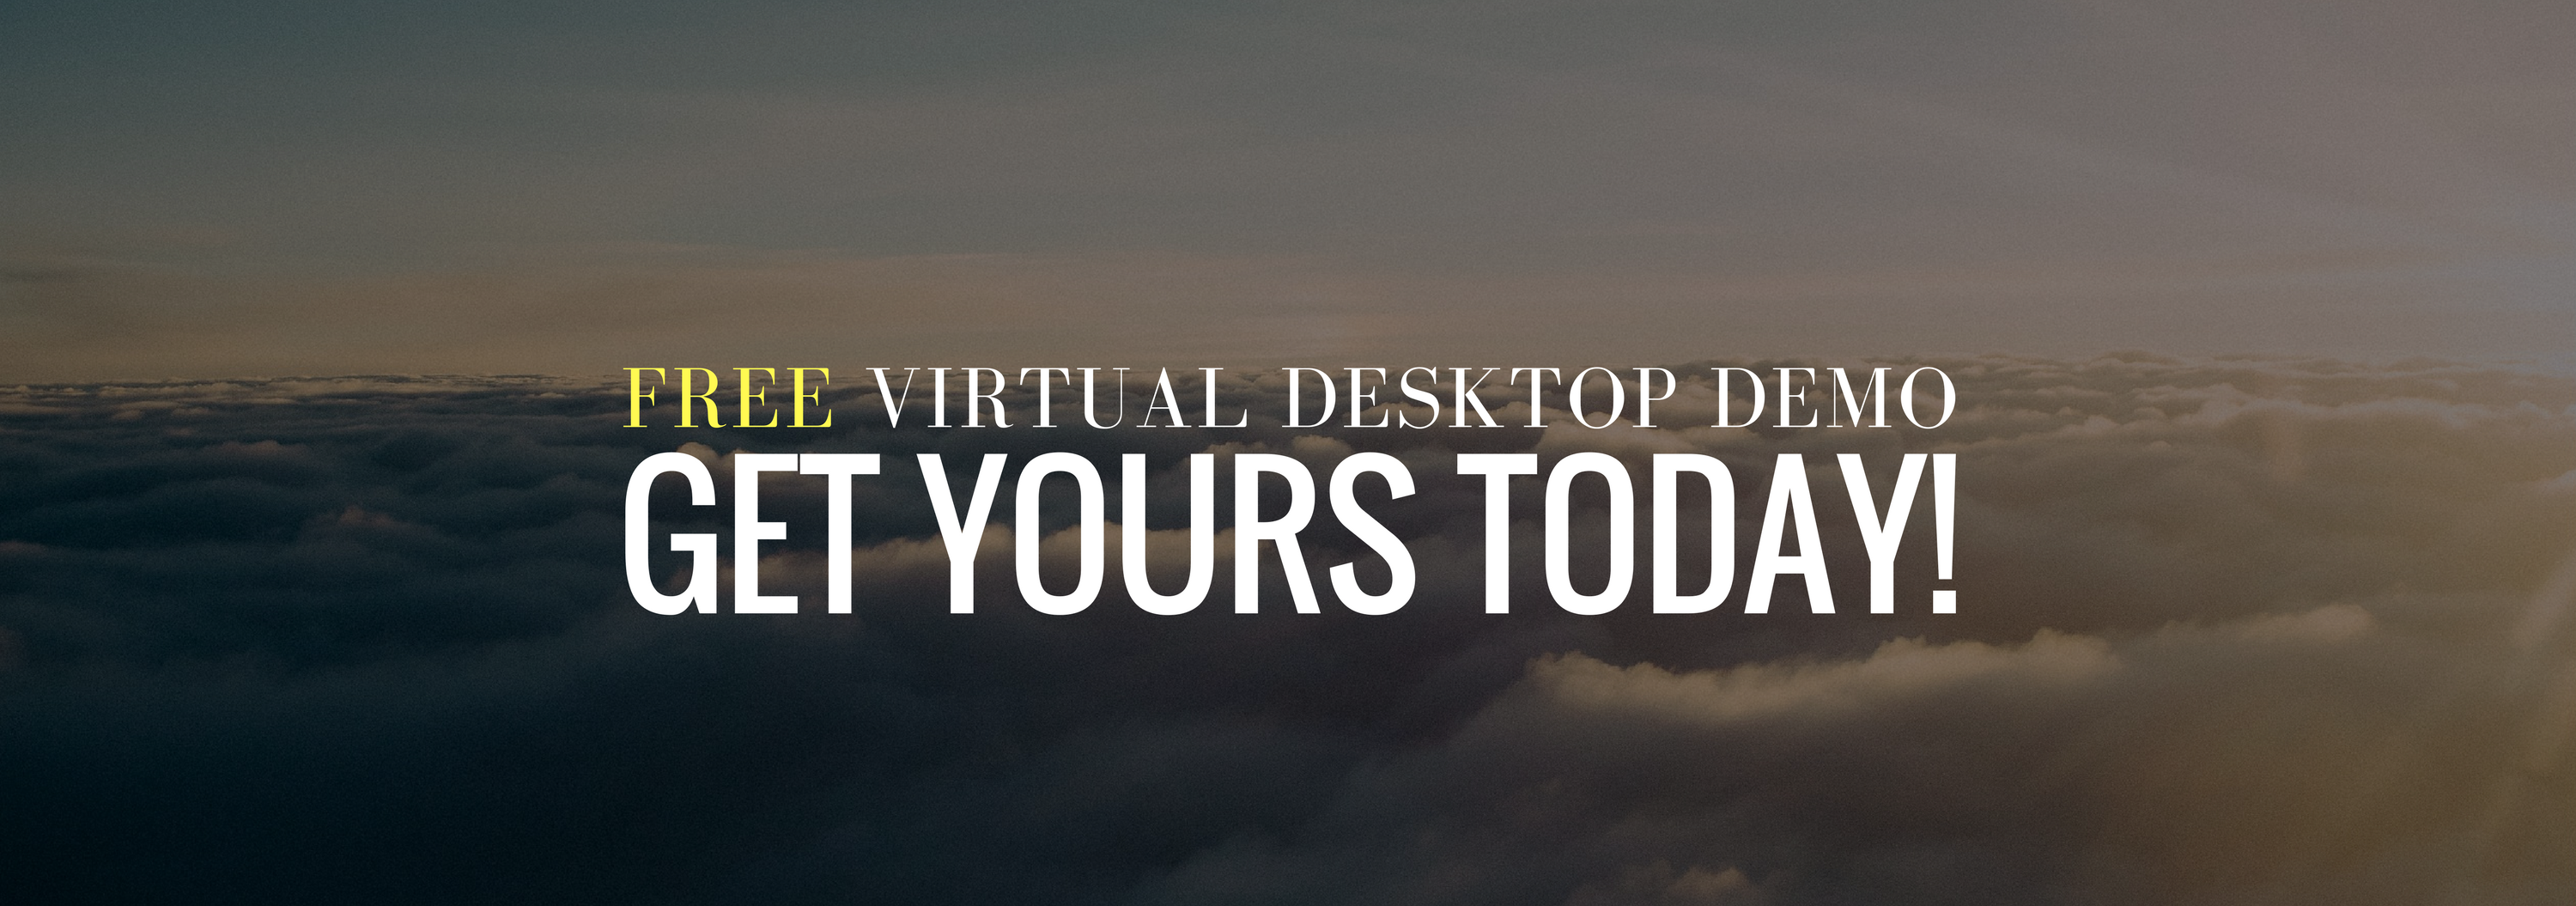 Free Virtual Desktop Demo (blog post CTA)